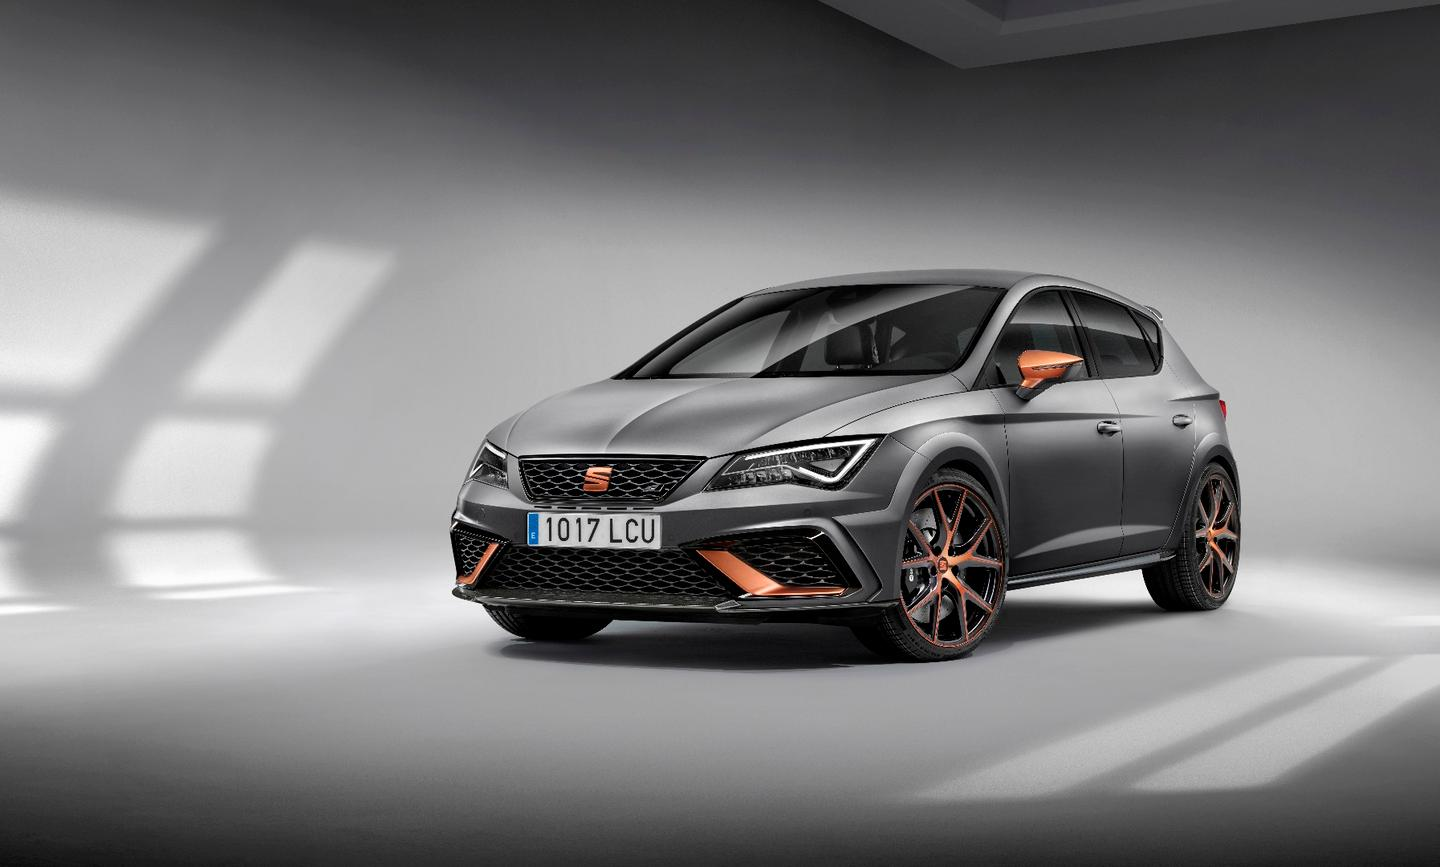 The new Seat Leon Cupra R will debut in Frankfurt